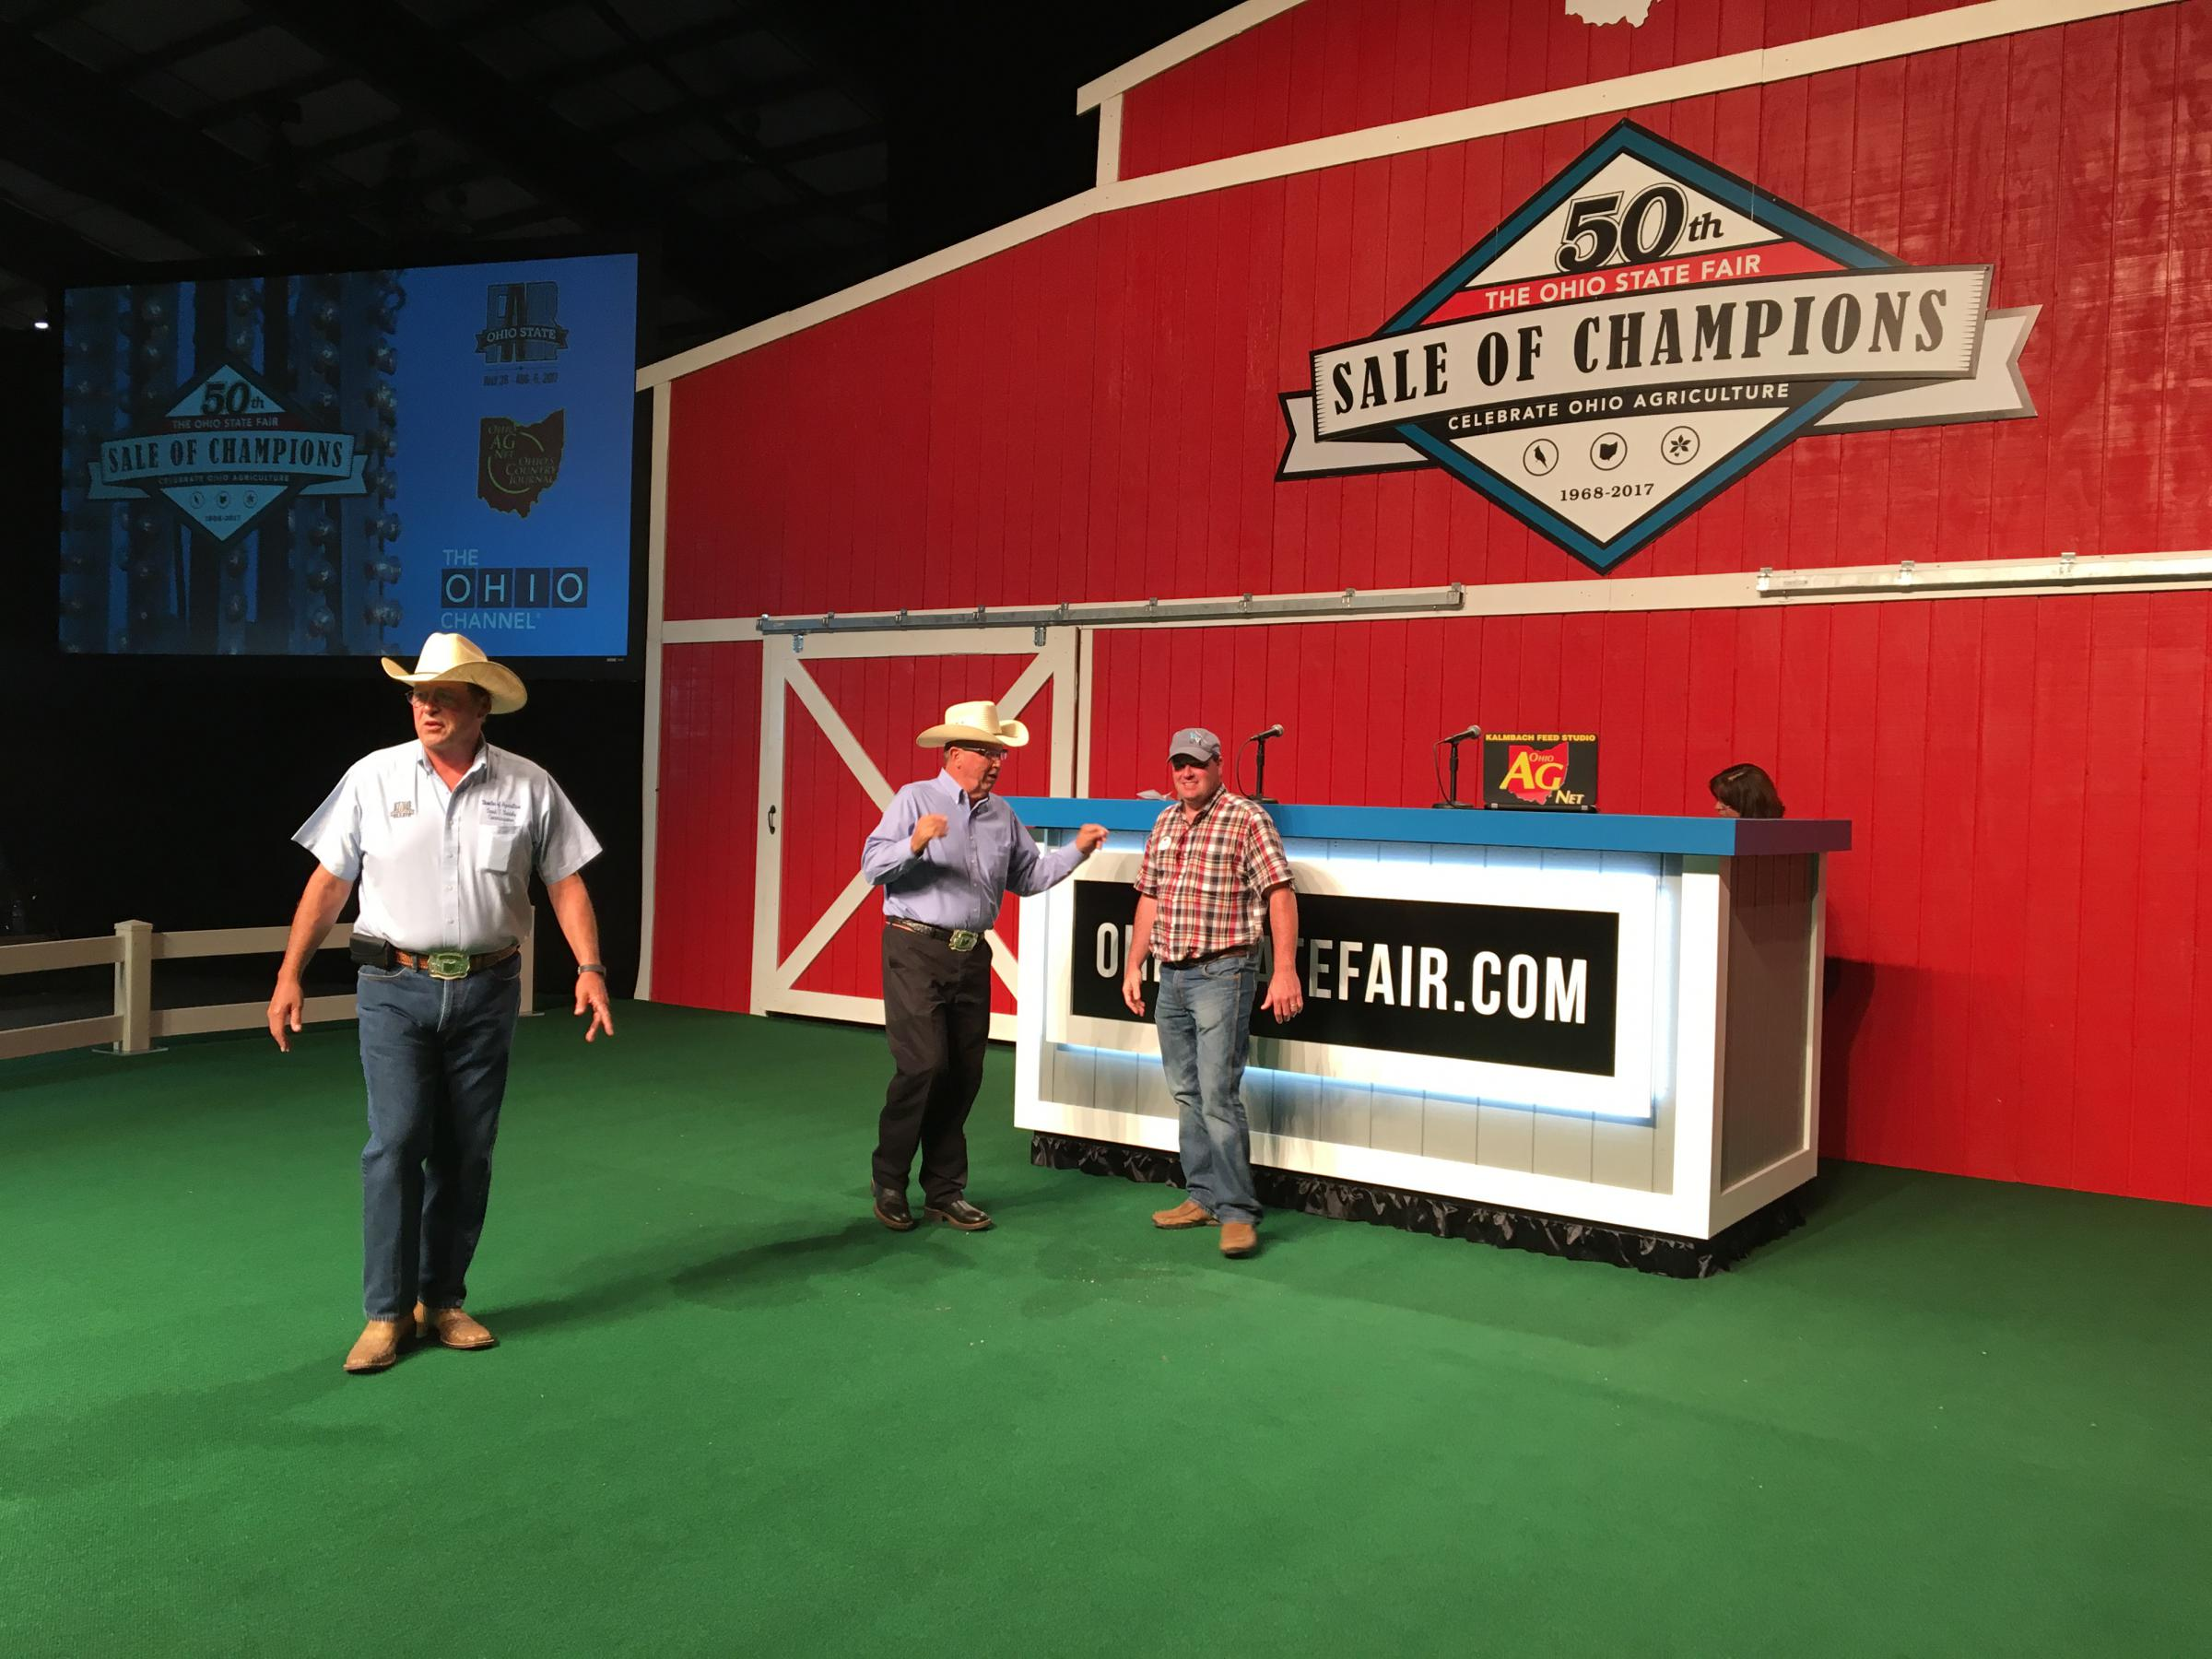 Ohio Department Of Public Records - Ohio department of agriculture director david daniels walks around the new sale of champions stage before the event